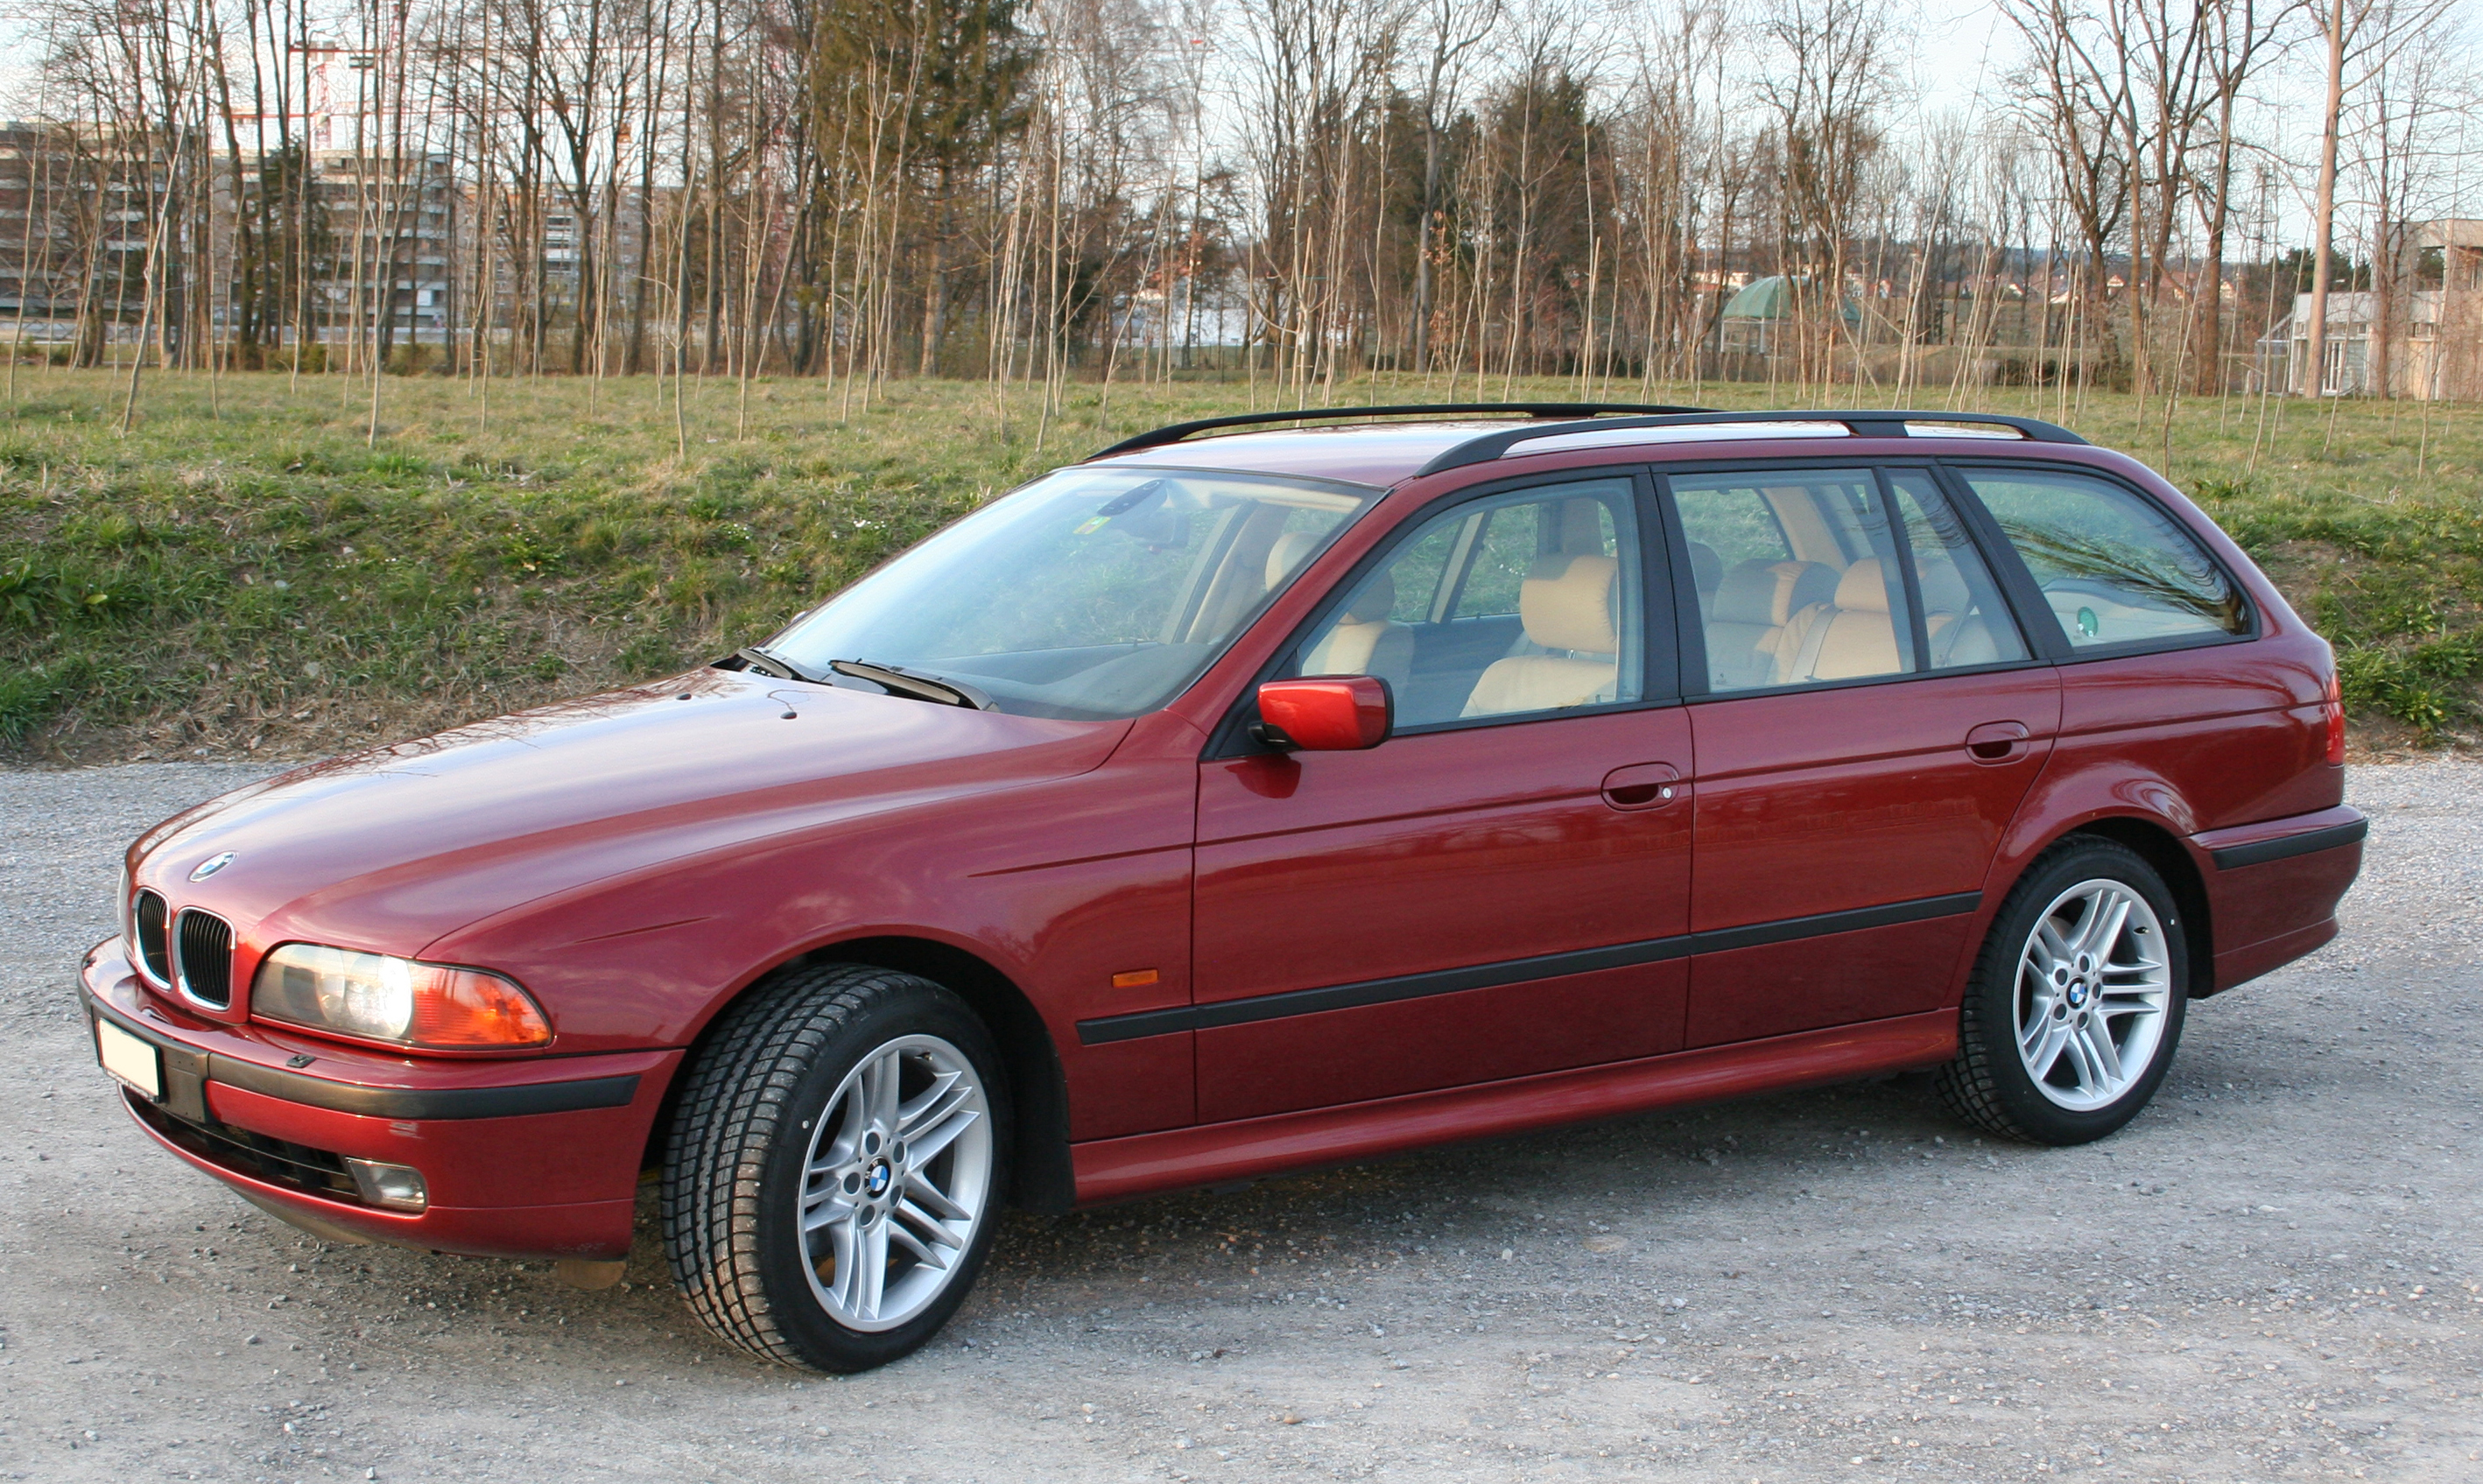 file bmw e39 touring 2000 jpg wikimedia commons. Black Bedroom Furniture Sets. Home Design Ideas